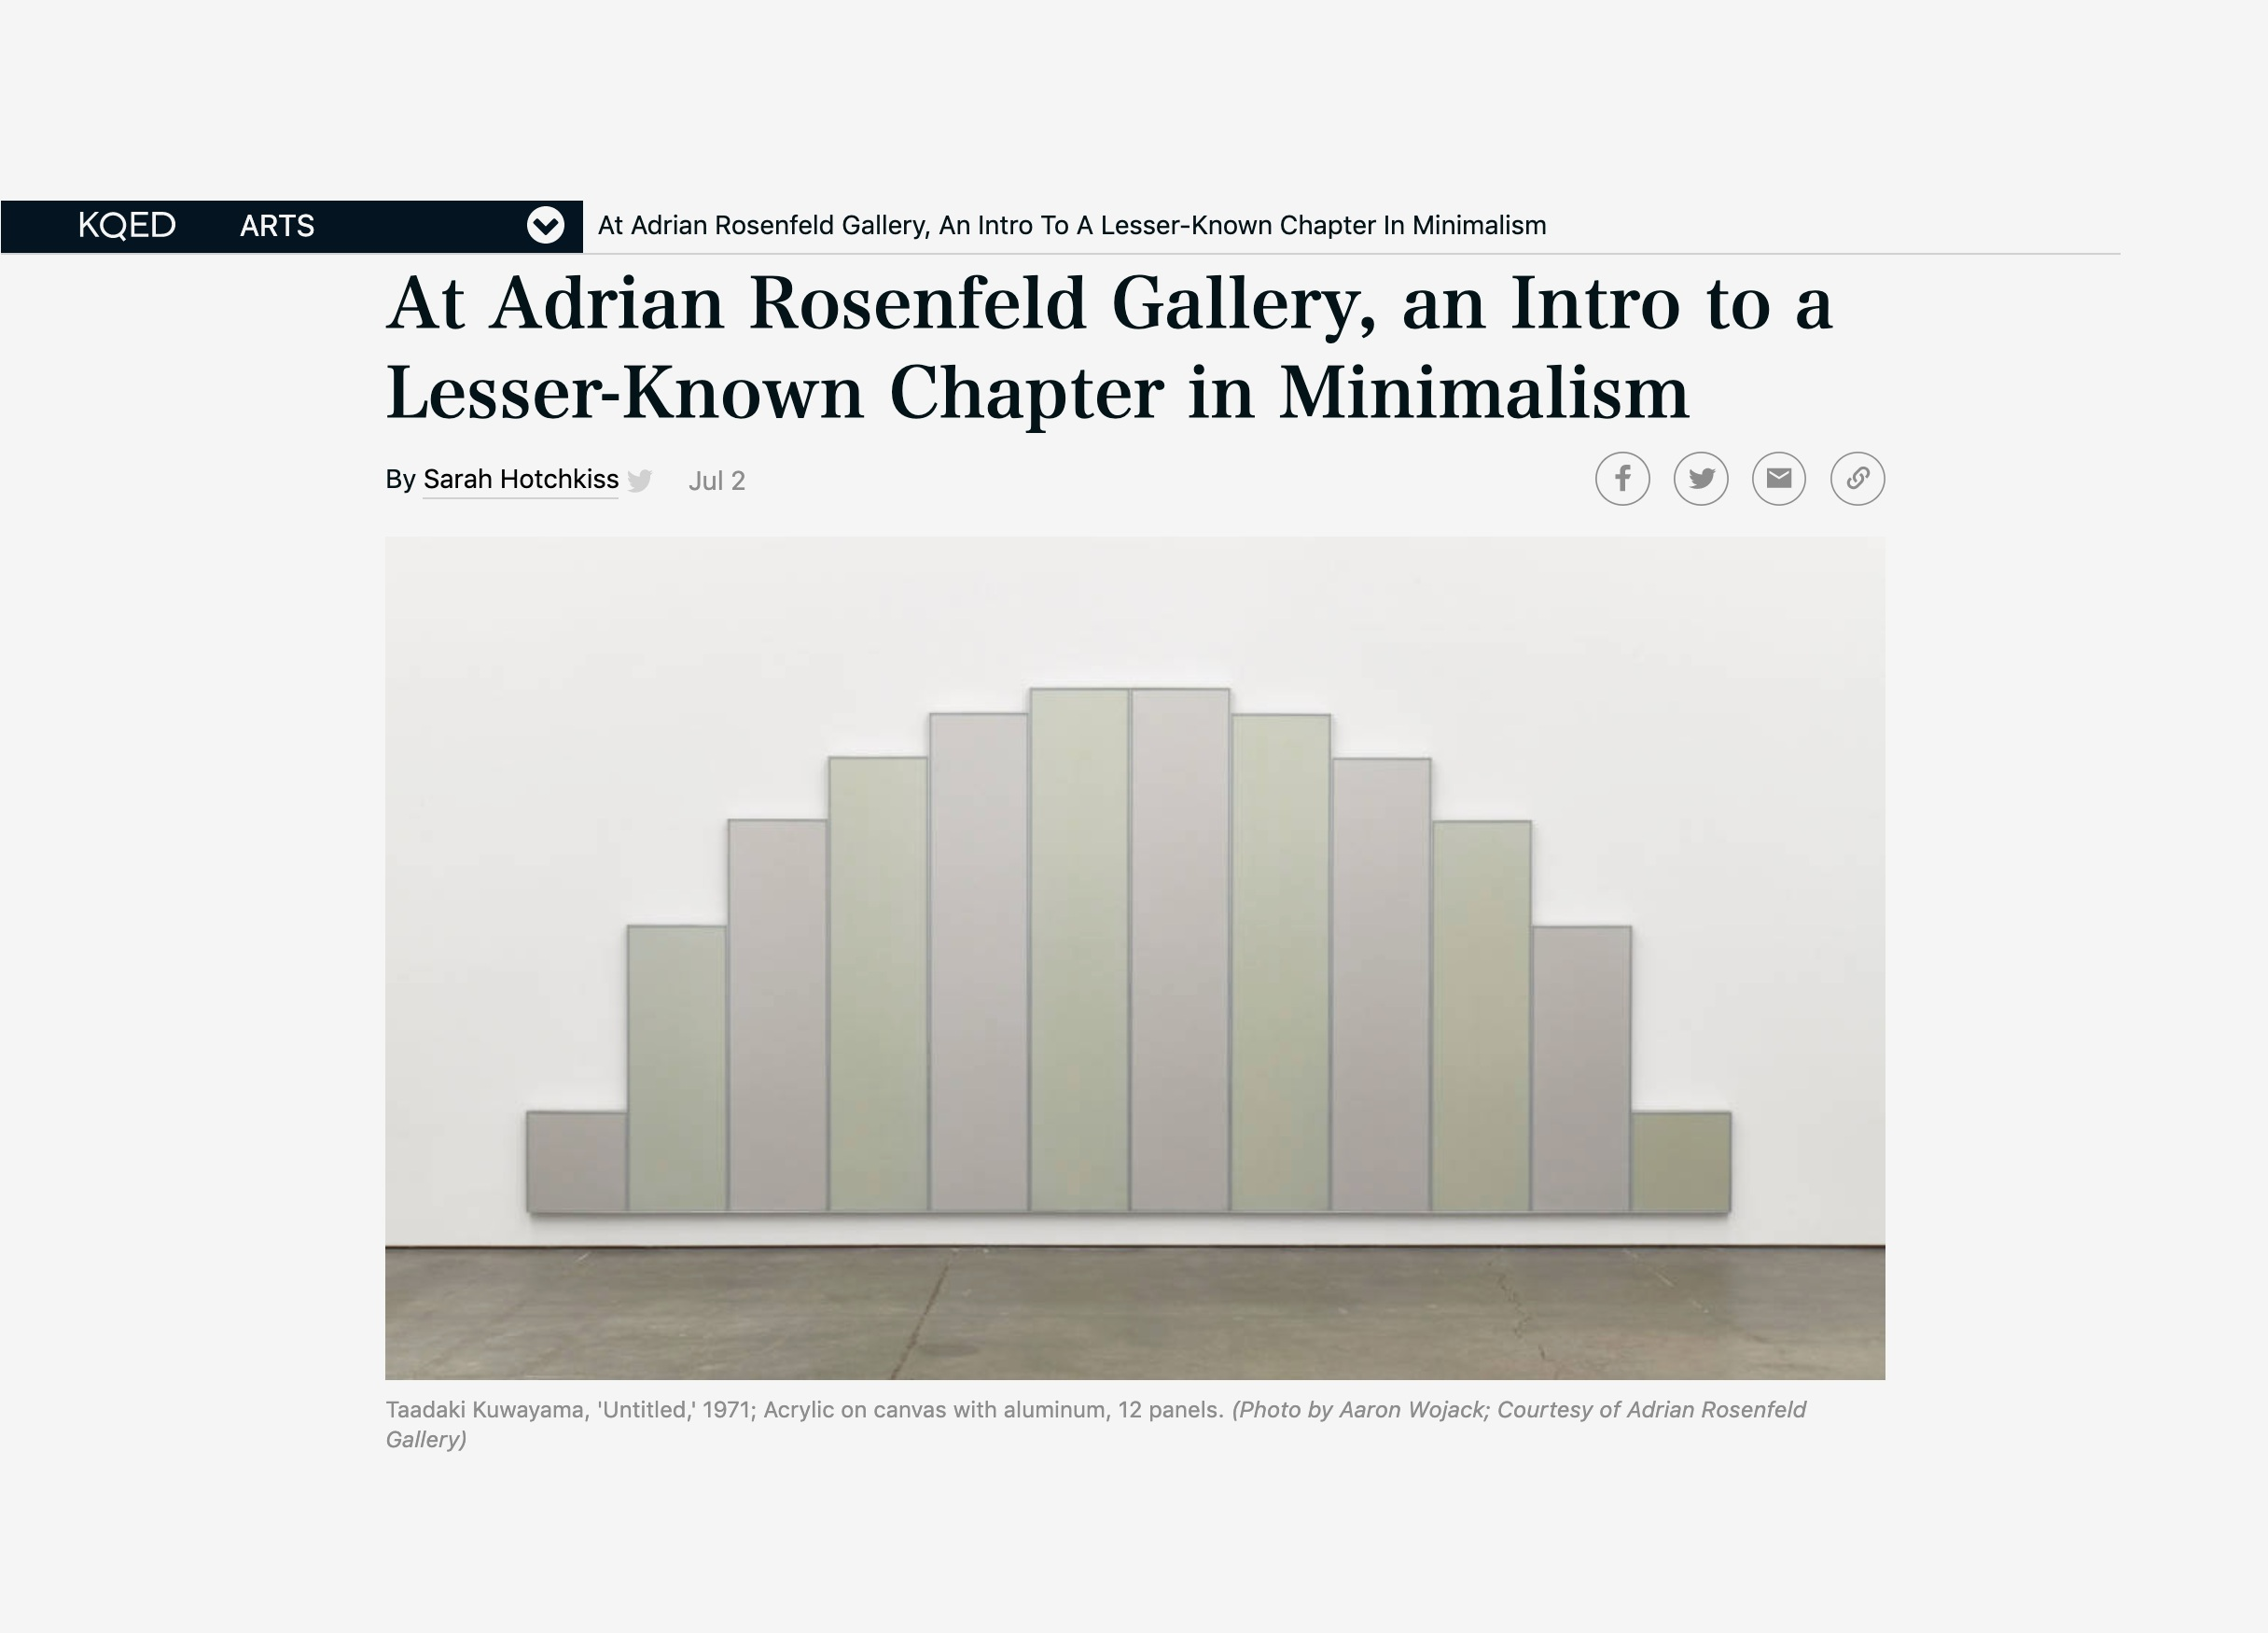 https://www.kqed.org/arts/13860586/at-adrian-rosenfeld-gallery-an-intro-to-an-unknown-chapter-in-minimalism